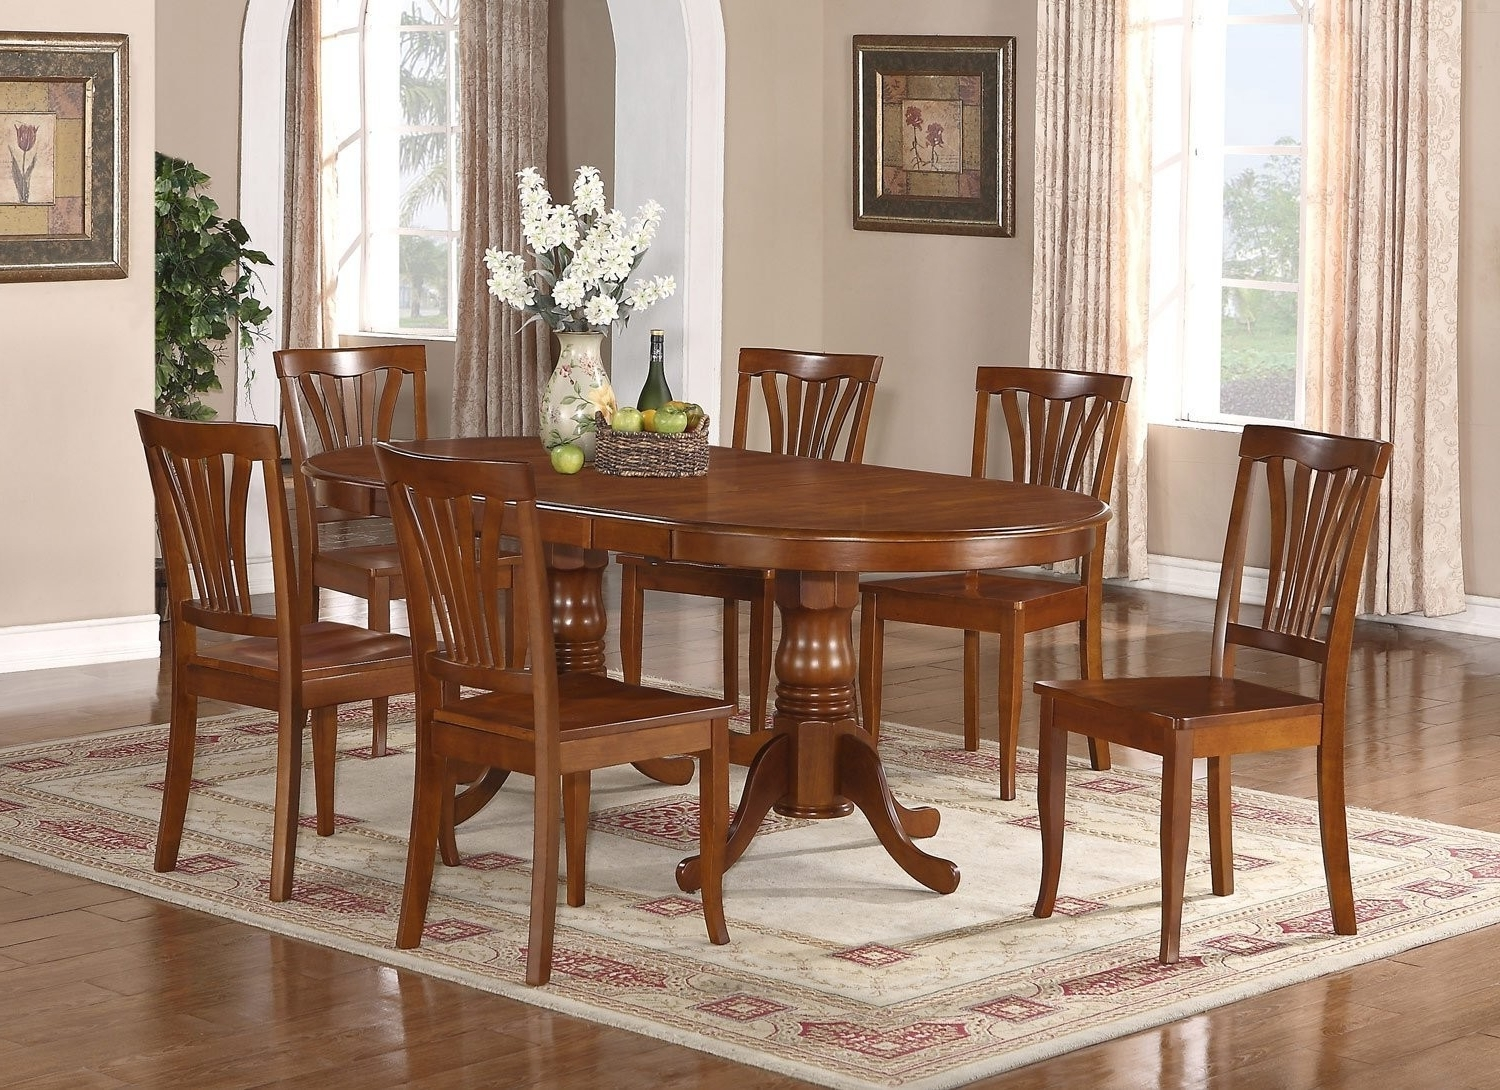 8 Seater Dining Table Sets Inside Current Round Dining Room Table Set For 8 Best Of Elegant 8 Seater Dining (View 21 of 25)